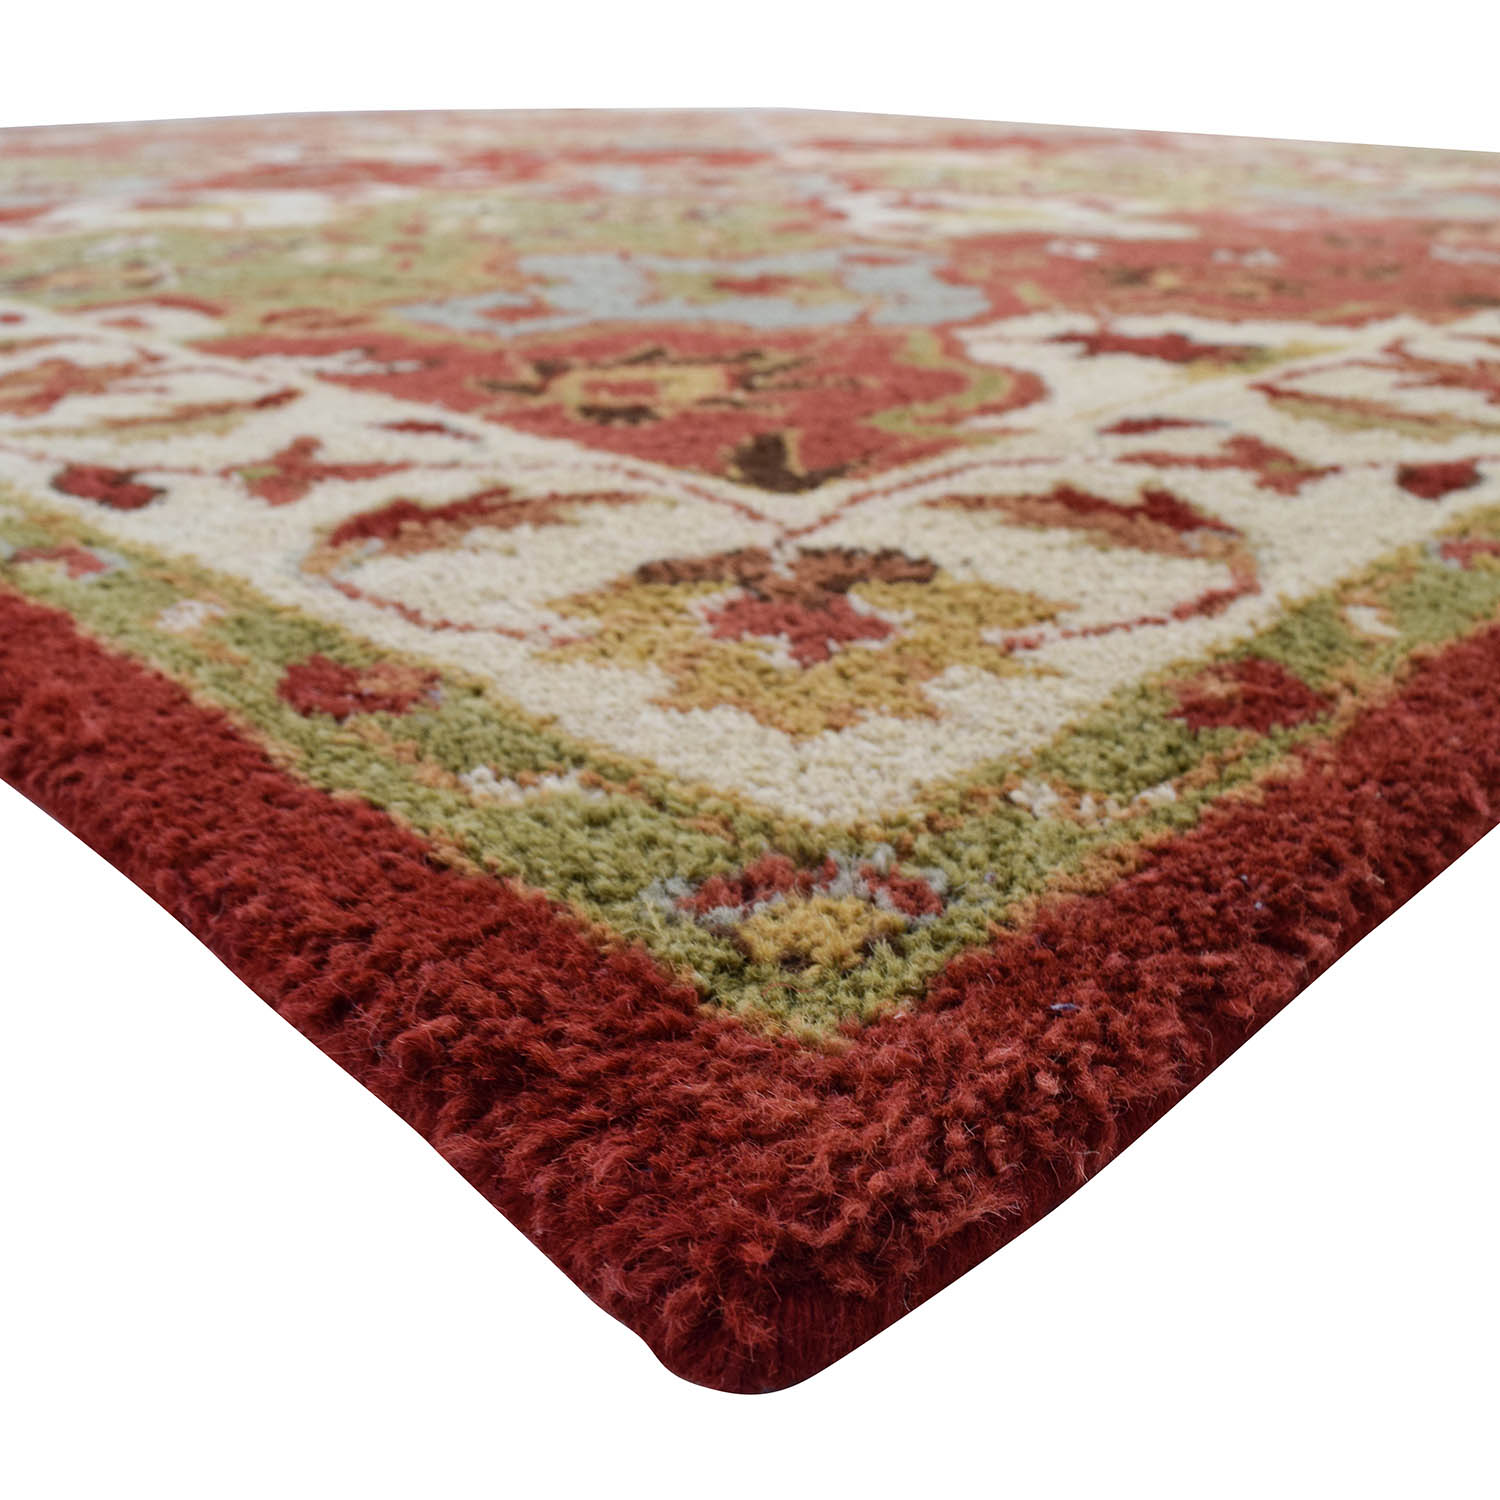 Pottery Barn Persian Patterned Rug